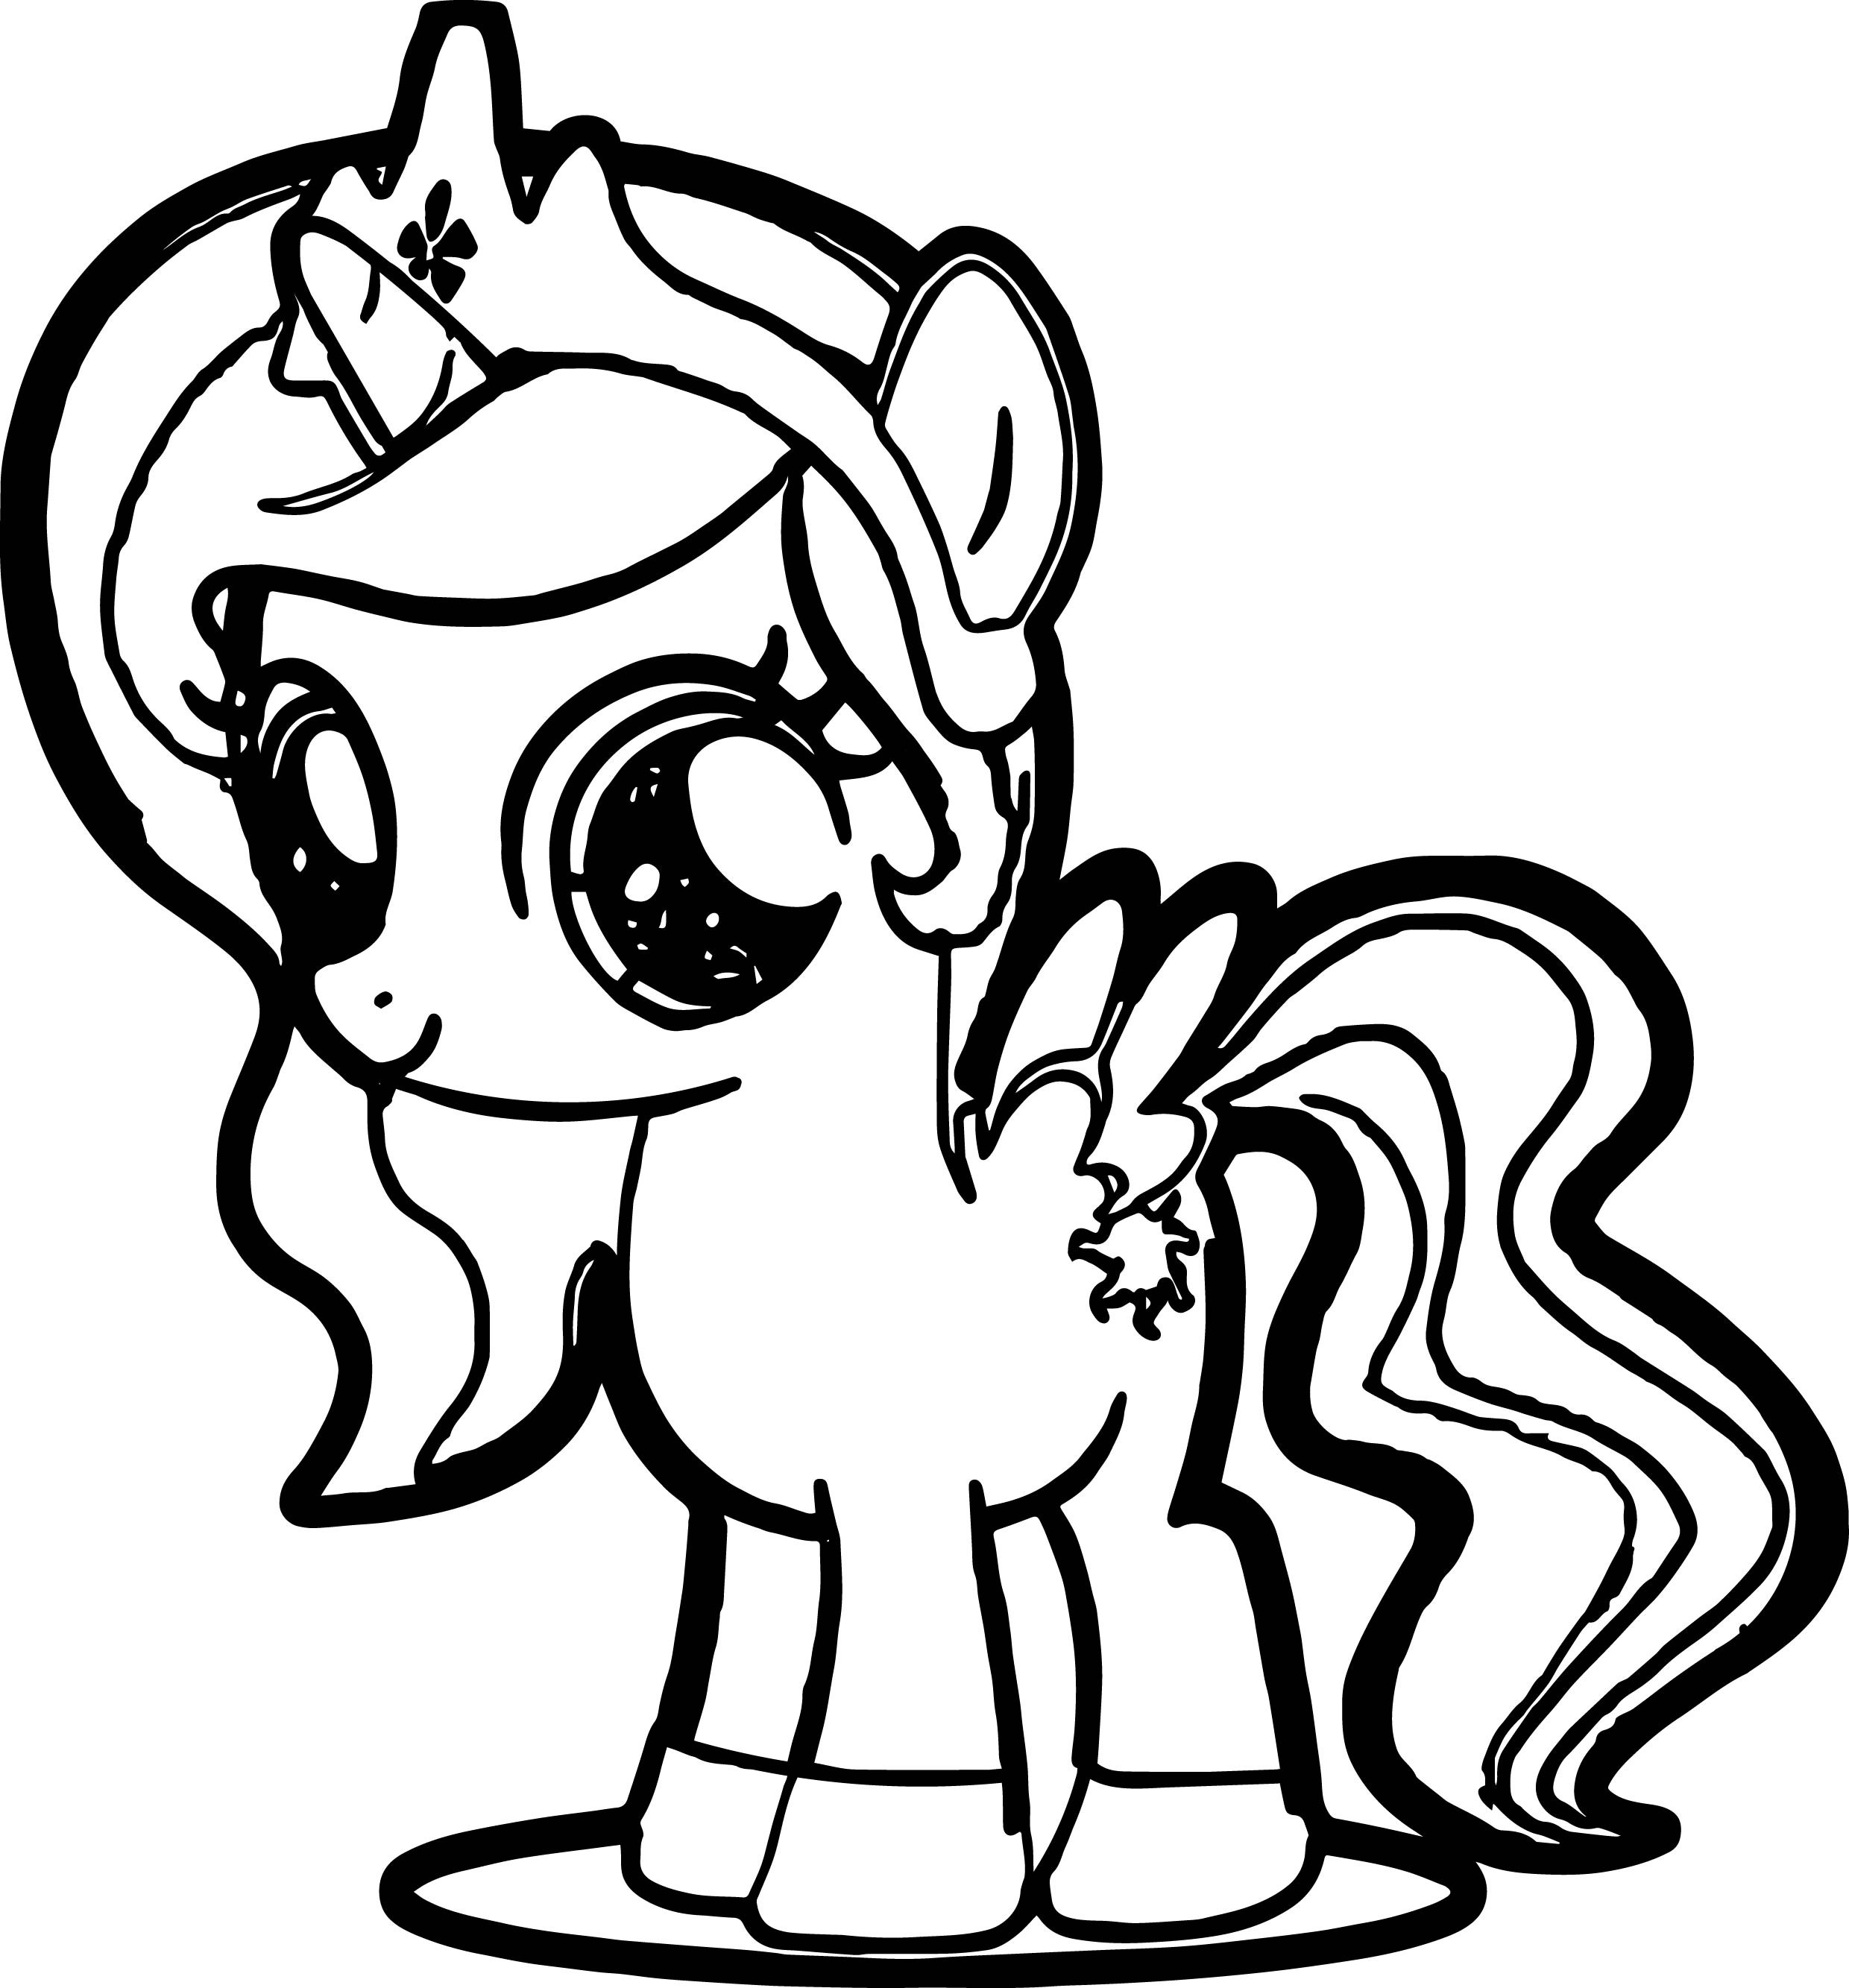 Mlp coloring pages fillies horses ~ My Little Pony Coloring Pages Princess Luna Filly at ...